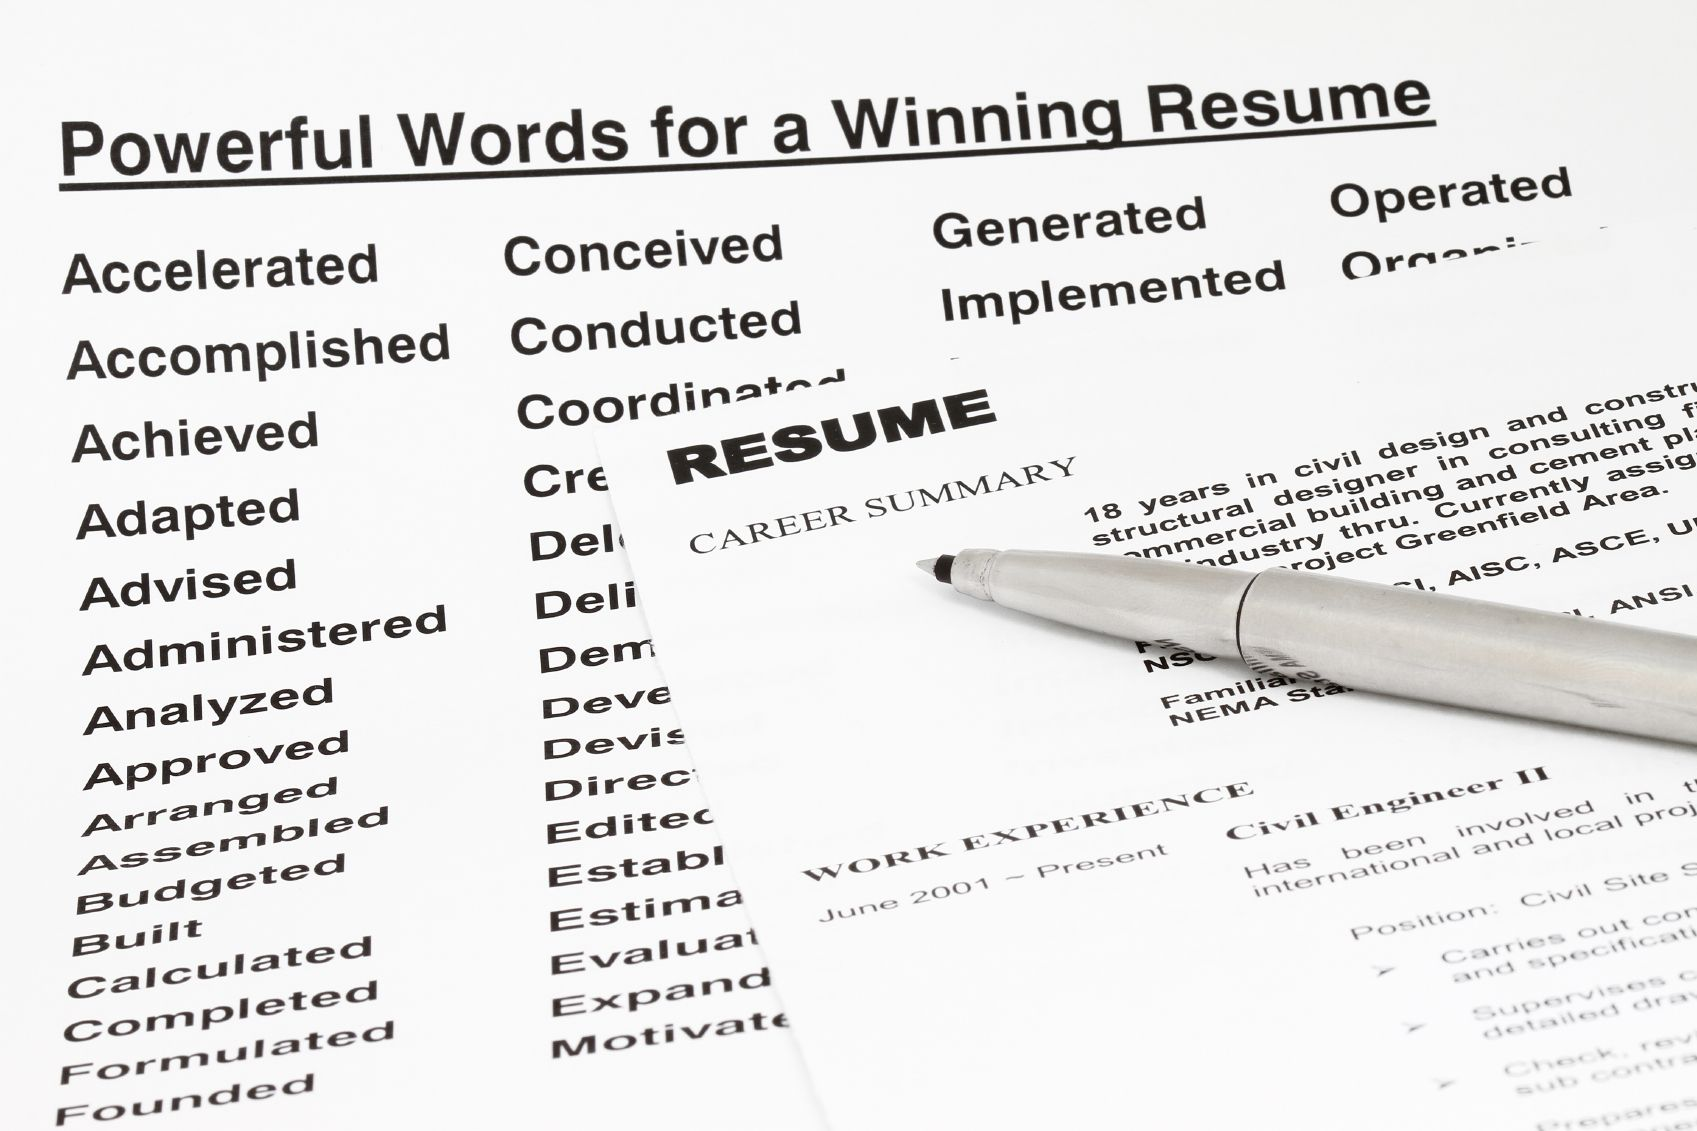 Keywords For Resume | How To Use Resume Keywords To Land An Interview